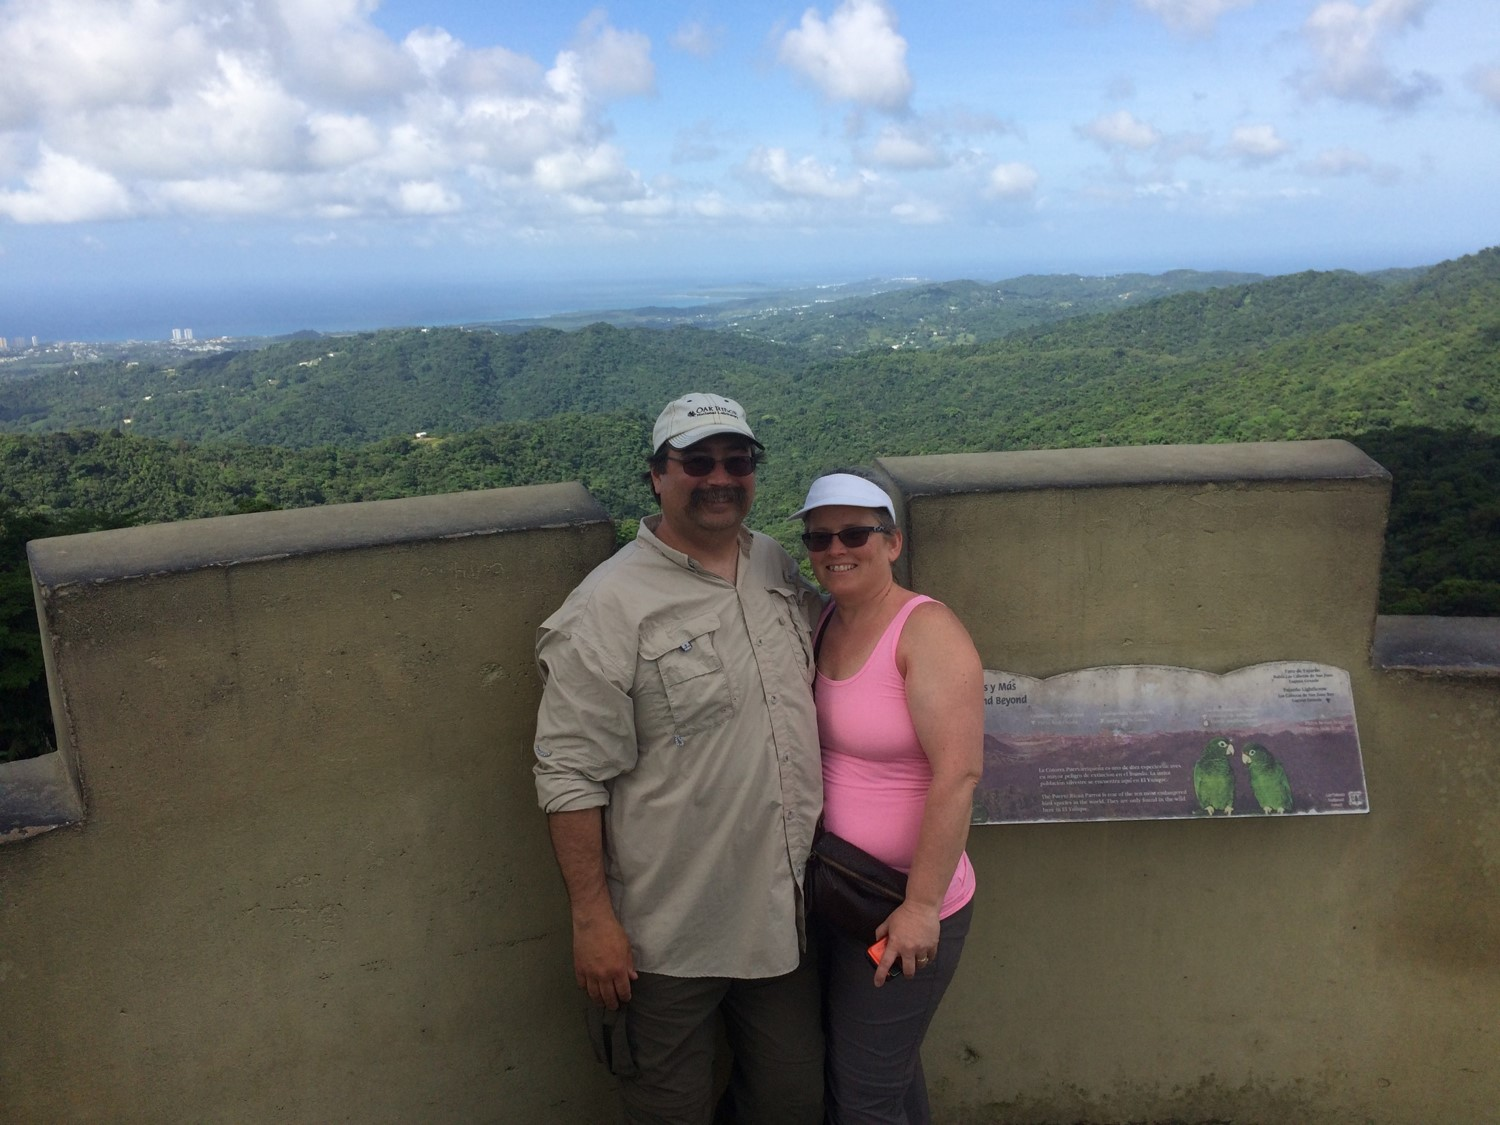 Before Hurricane Maria - Randy Kolka and his wife Susan in San Juan, Puerto Rico during a visit to the El Yunque National Forest to explore the Luquillo Experimental Forest.